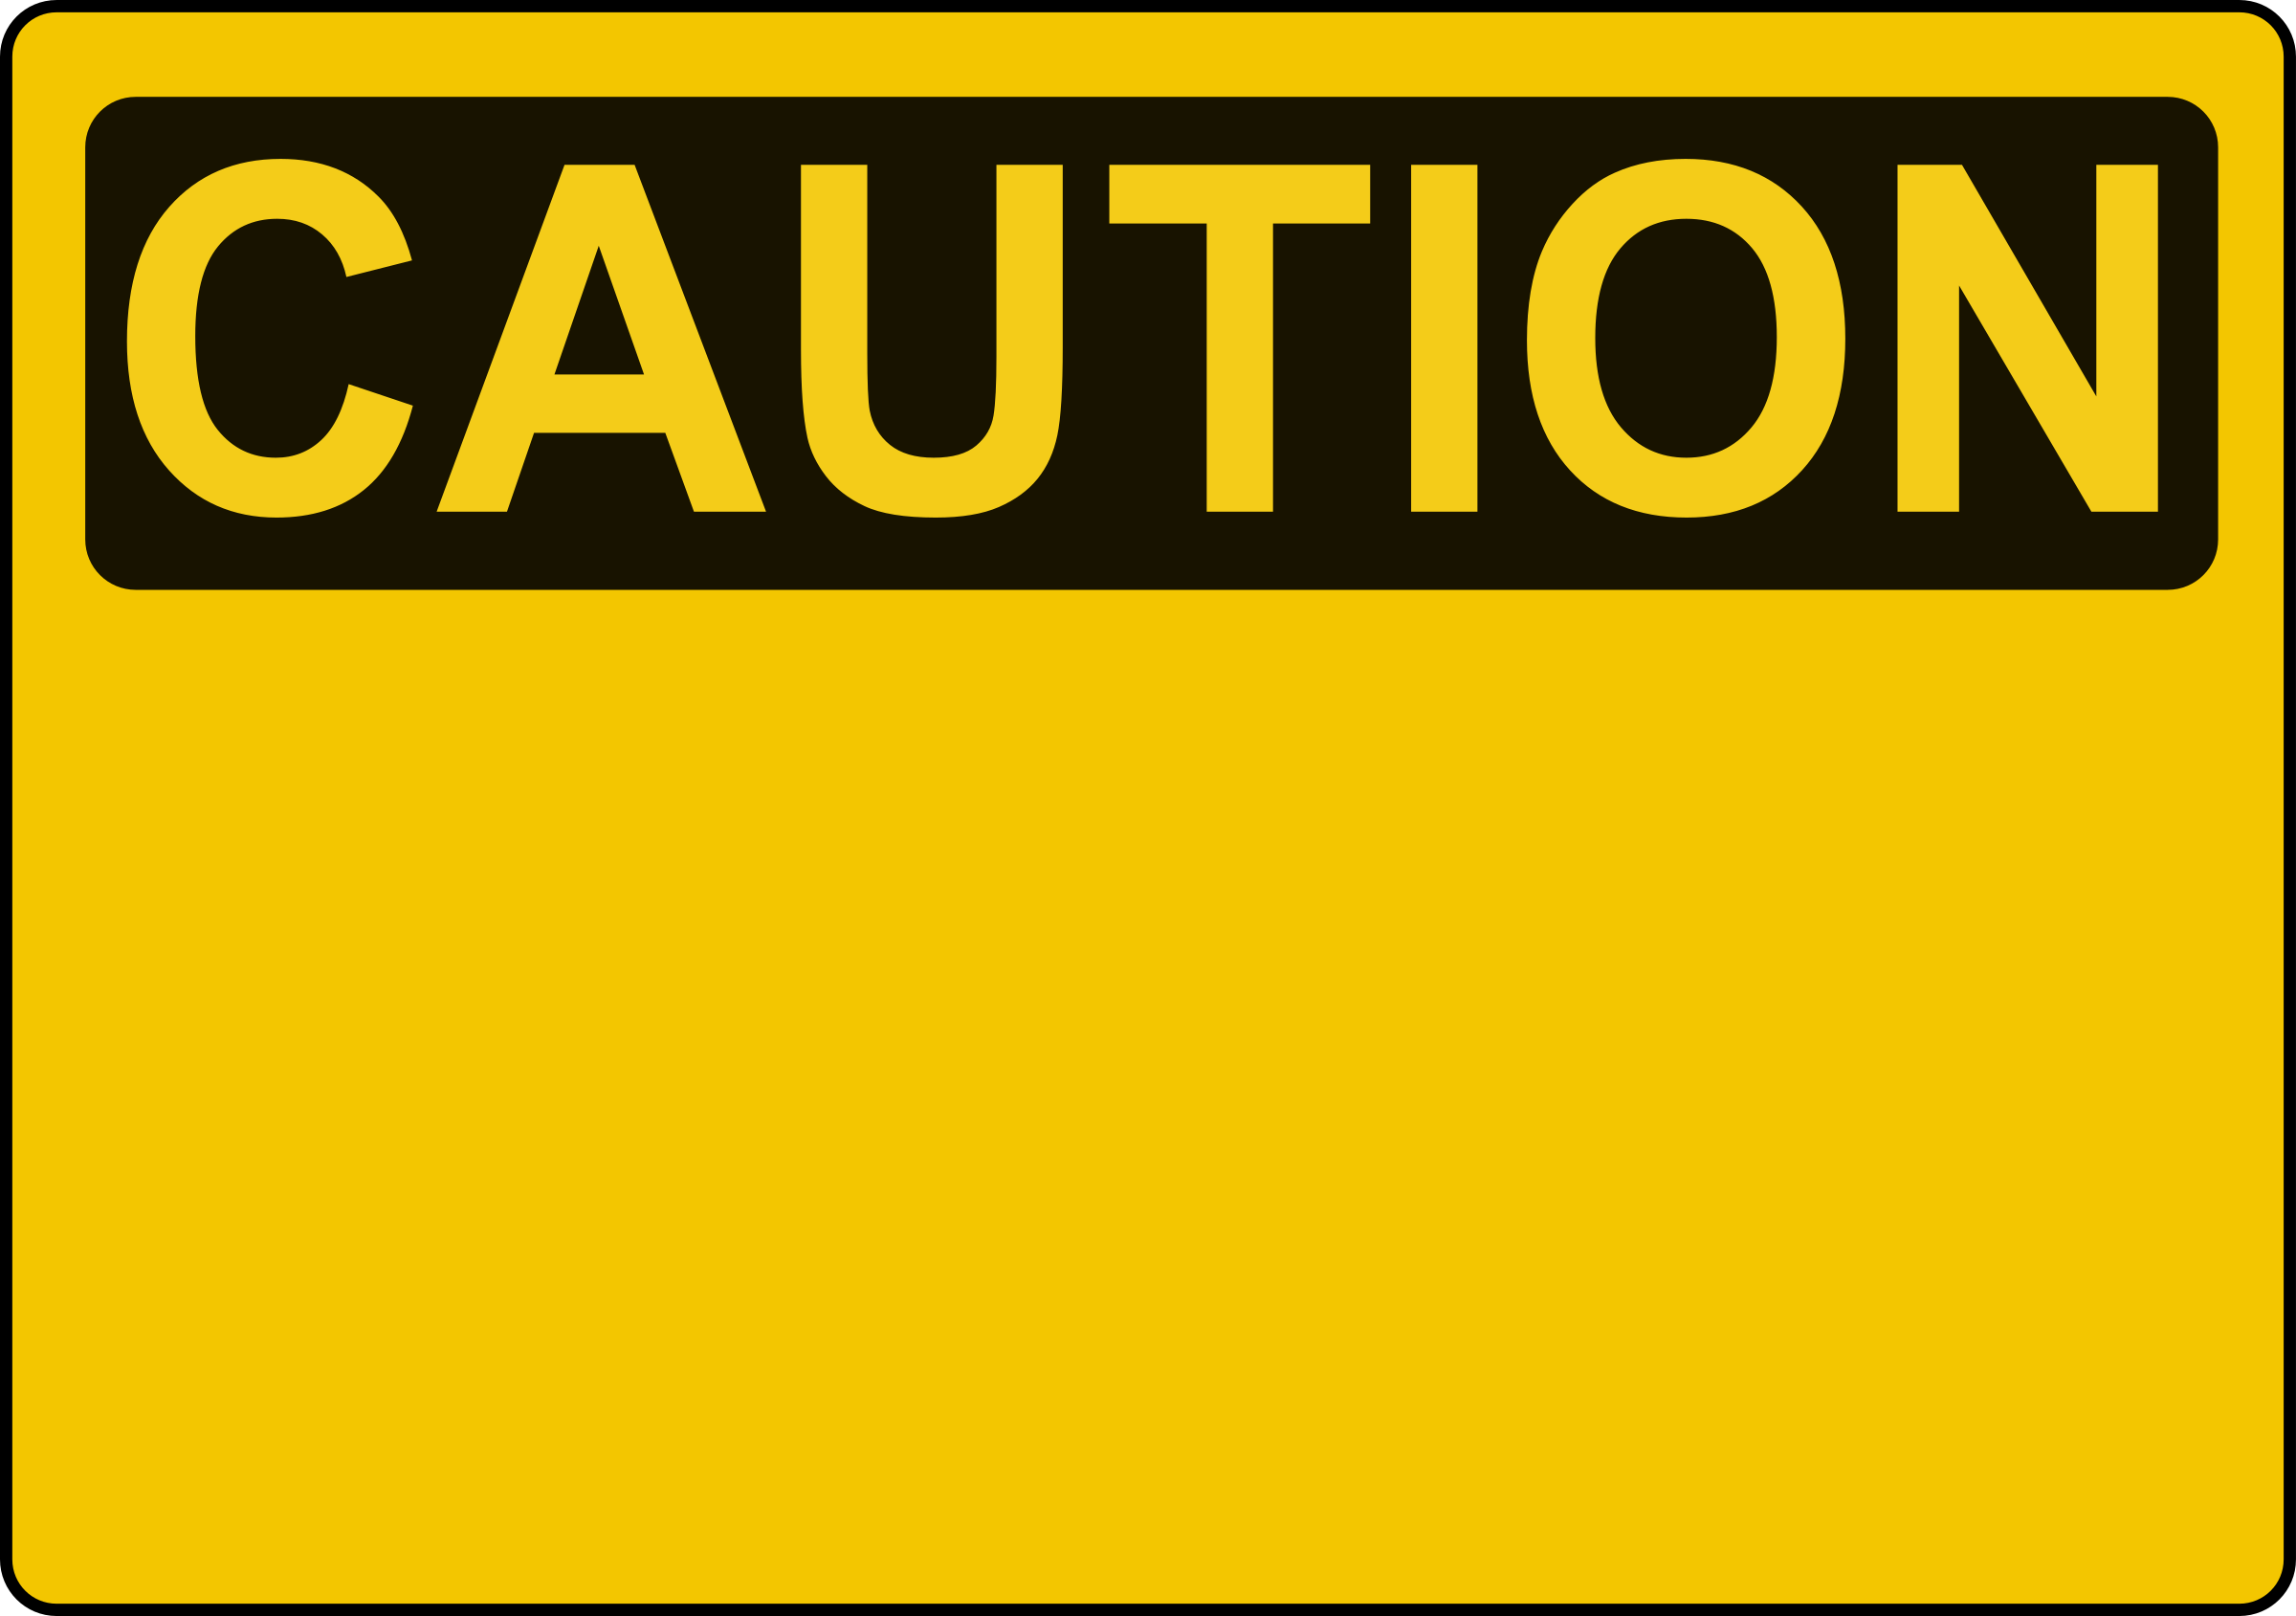 Caution Sign Template By Rones Caution Sign Template On